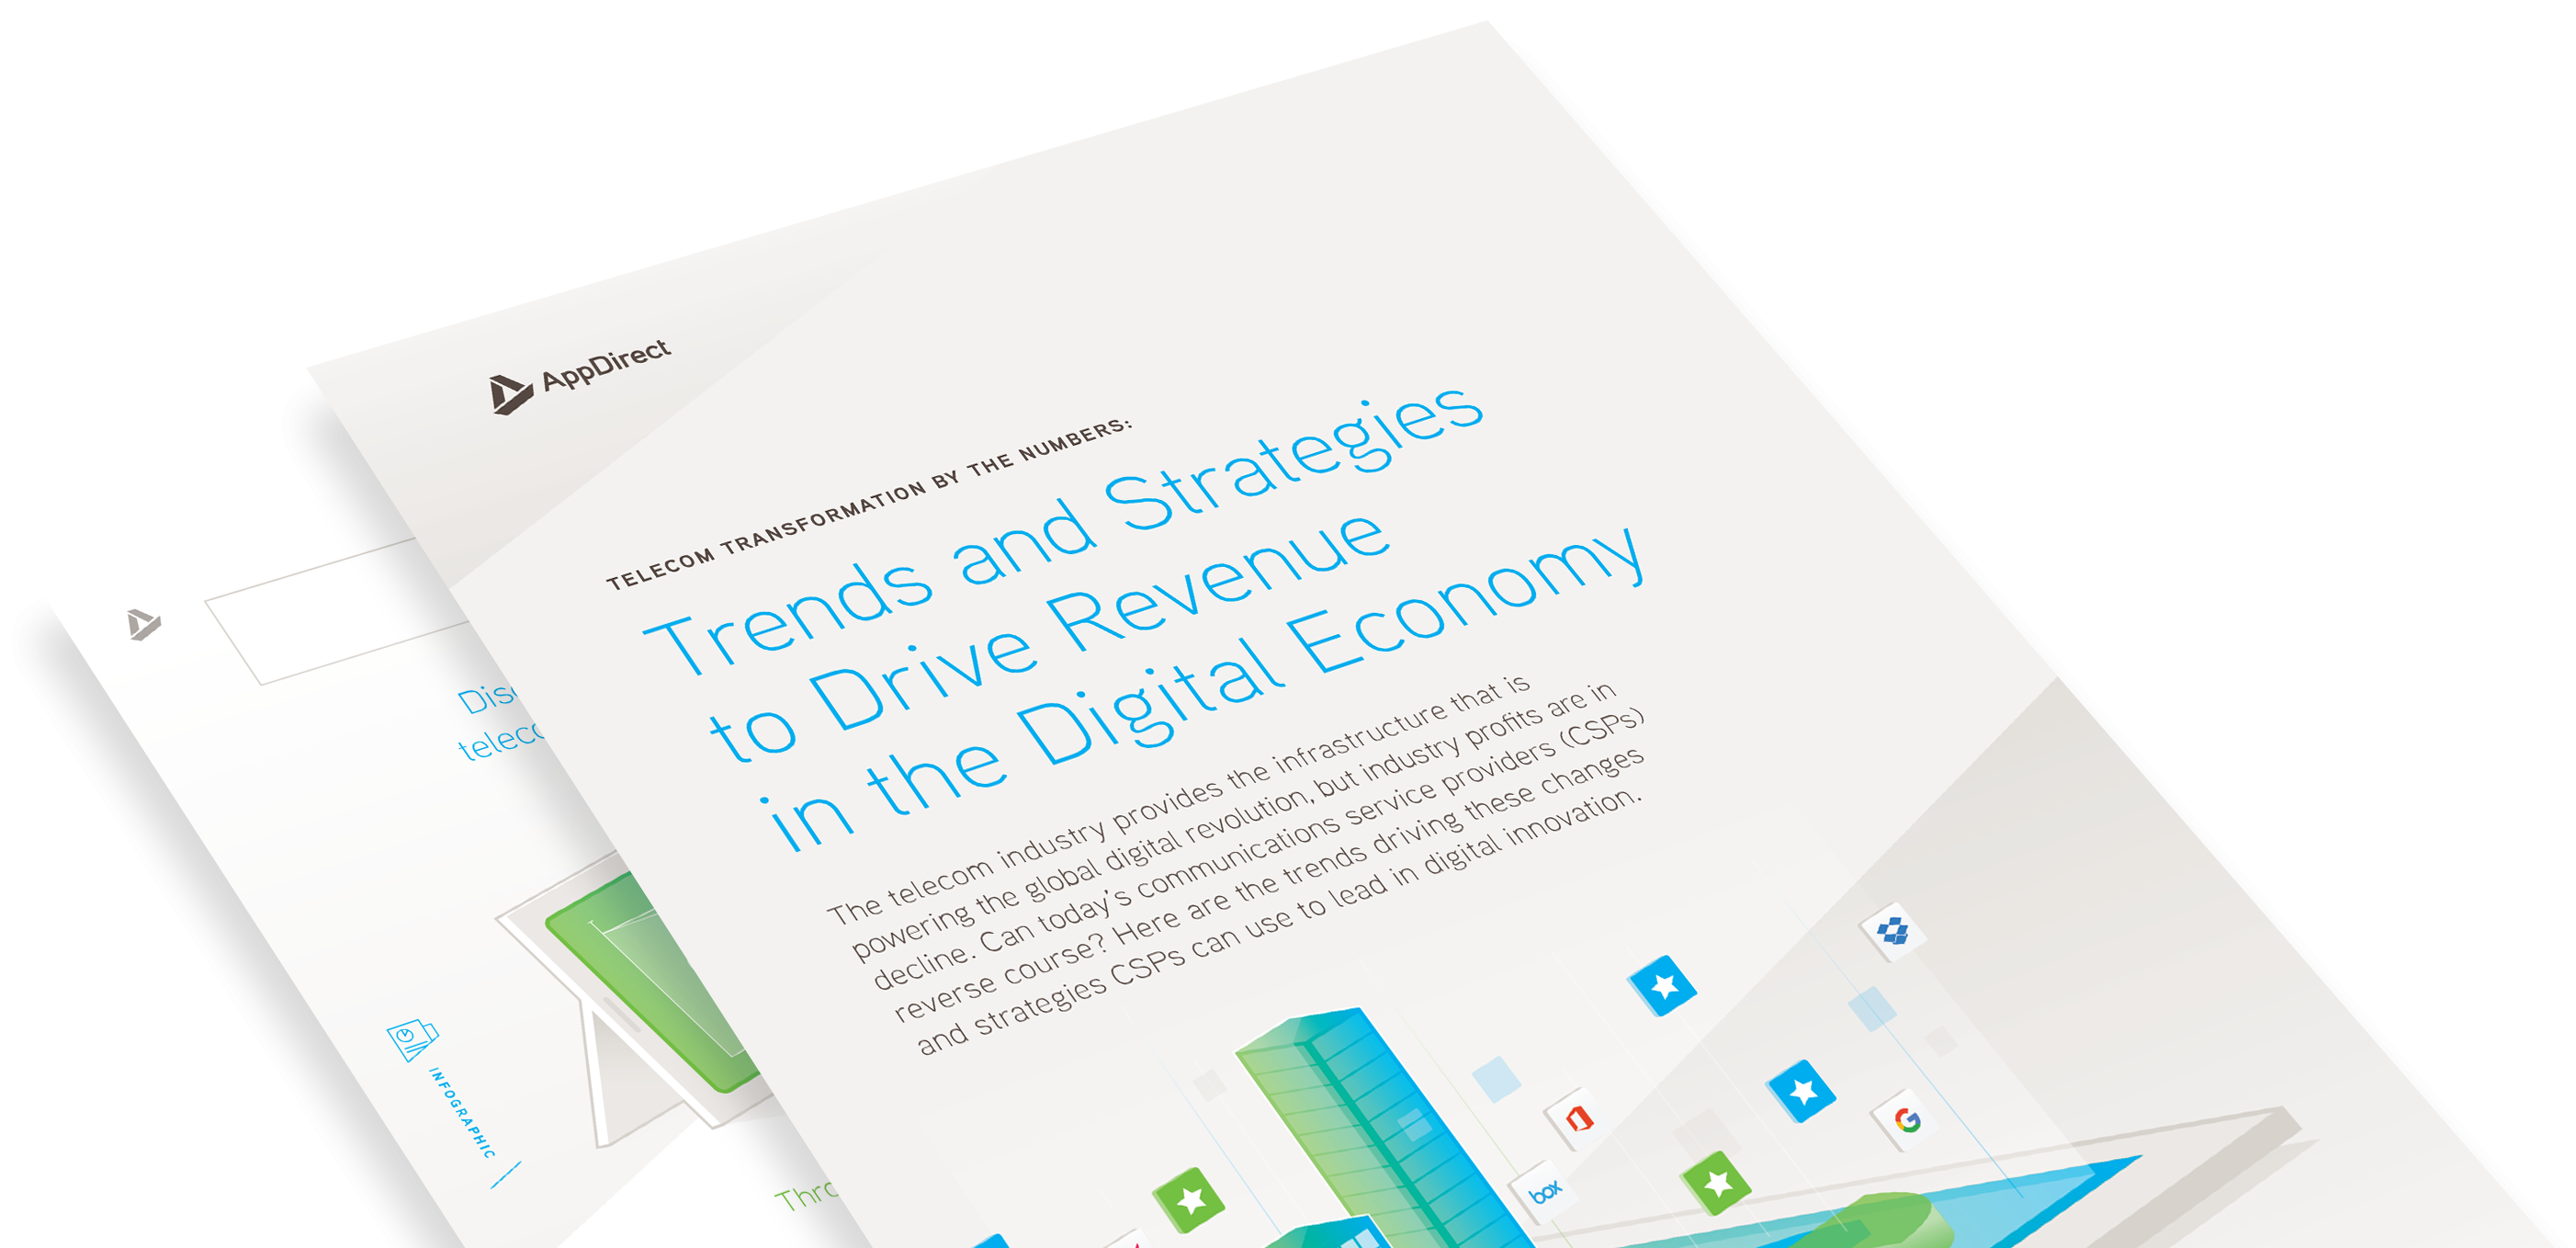 Trends and Strategies to Drive Revenue in the Digital Economy